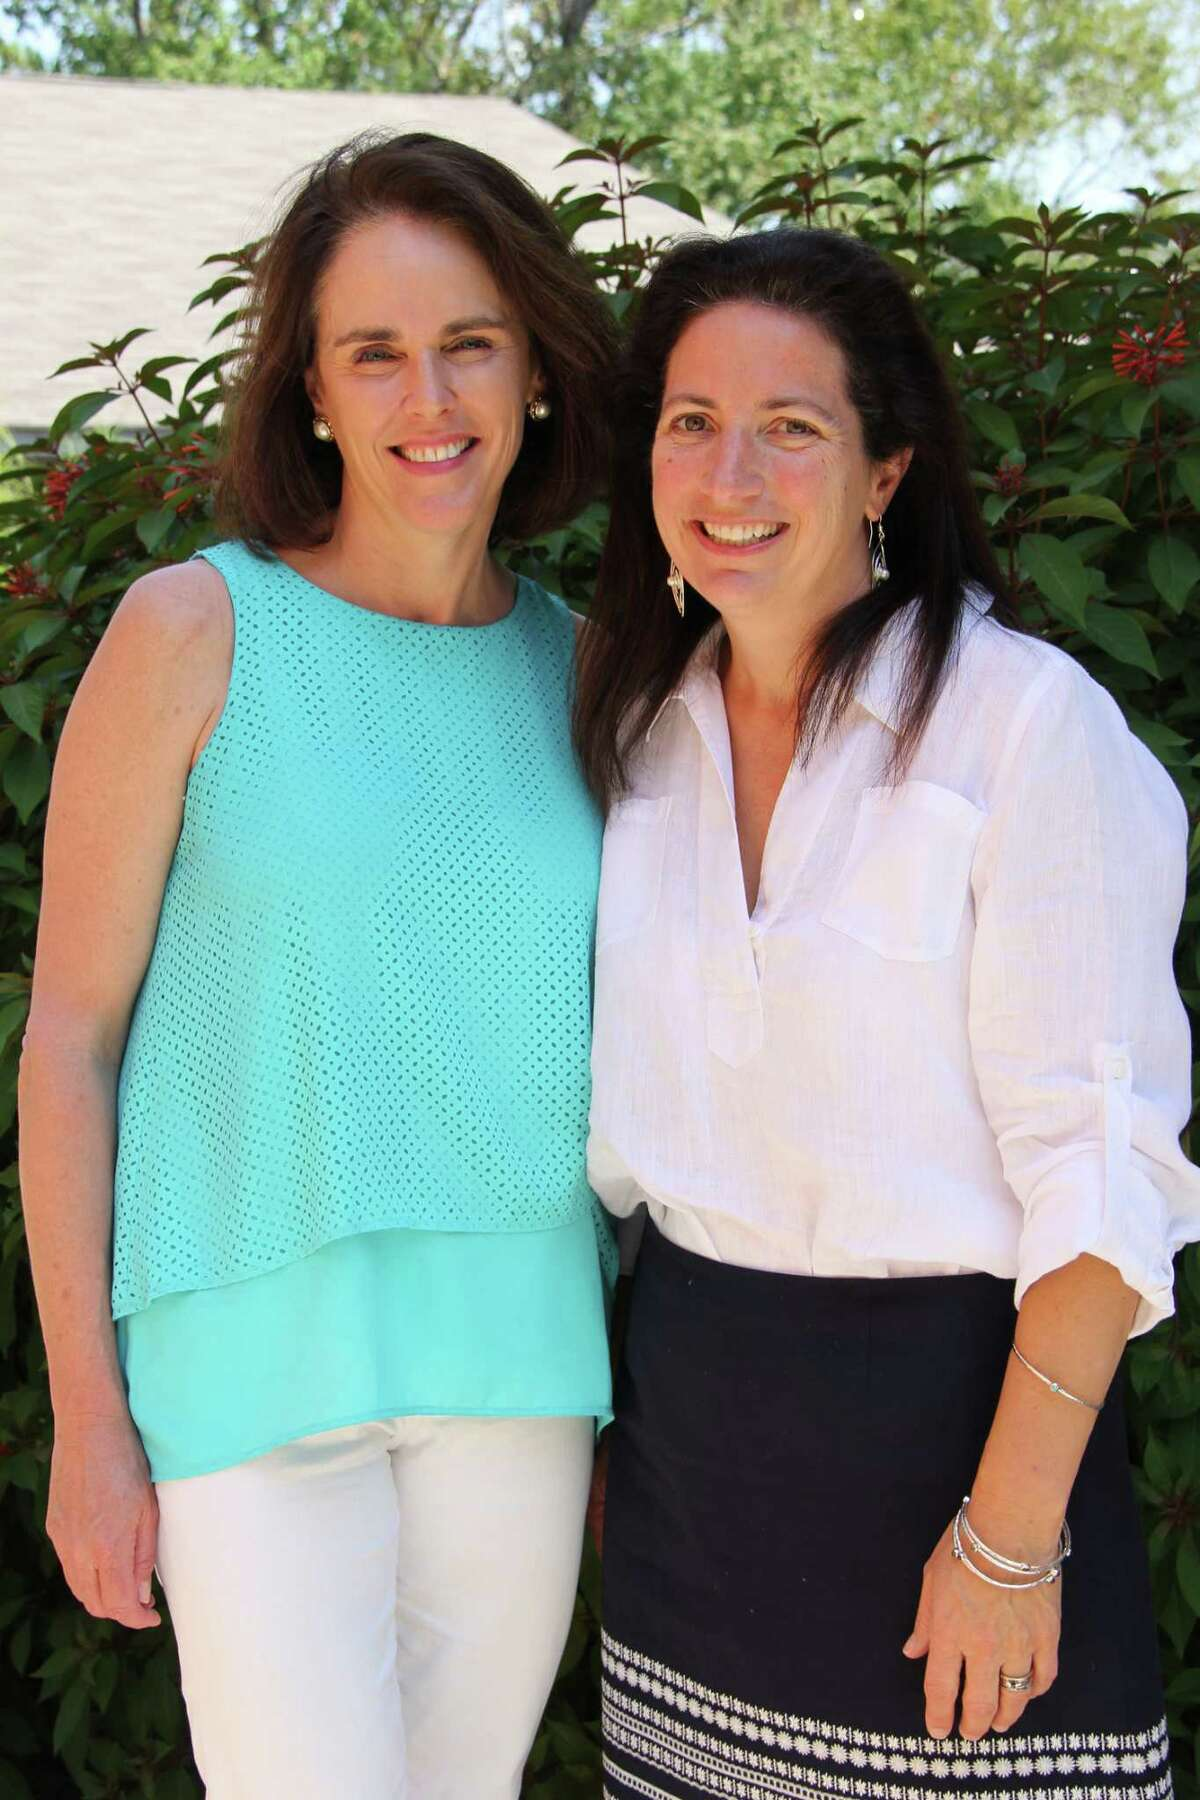 Susan DeMarco, left, and Christie Swanbeck are co-chairs of the Signatures Executive Committee that is seeking Visiting Author applications for the 2017 Signatures Author Series Dec. 8 featuring bestselling suspense novelist Paula Hawkins.